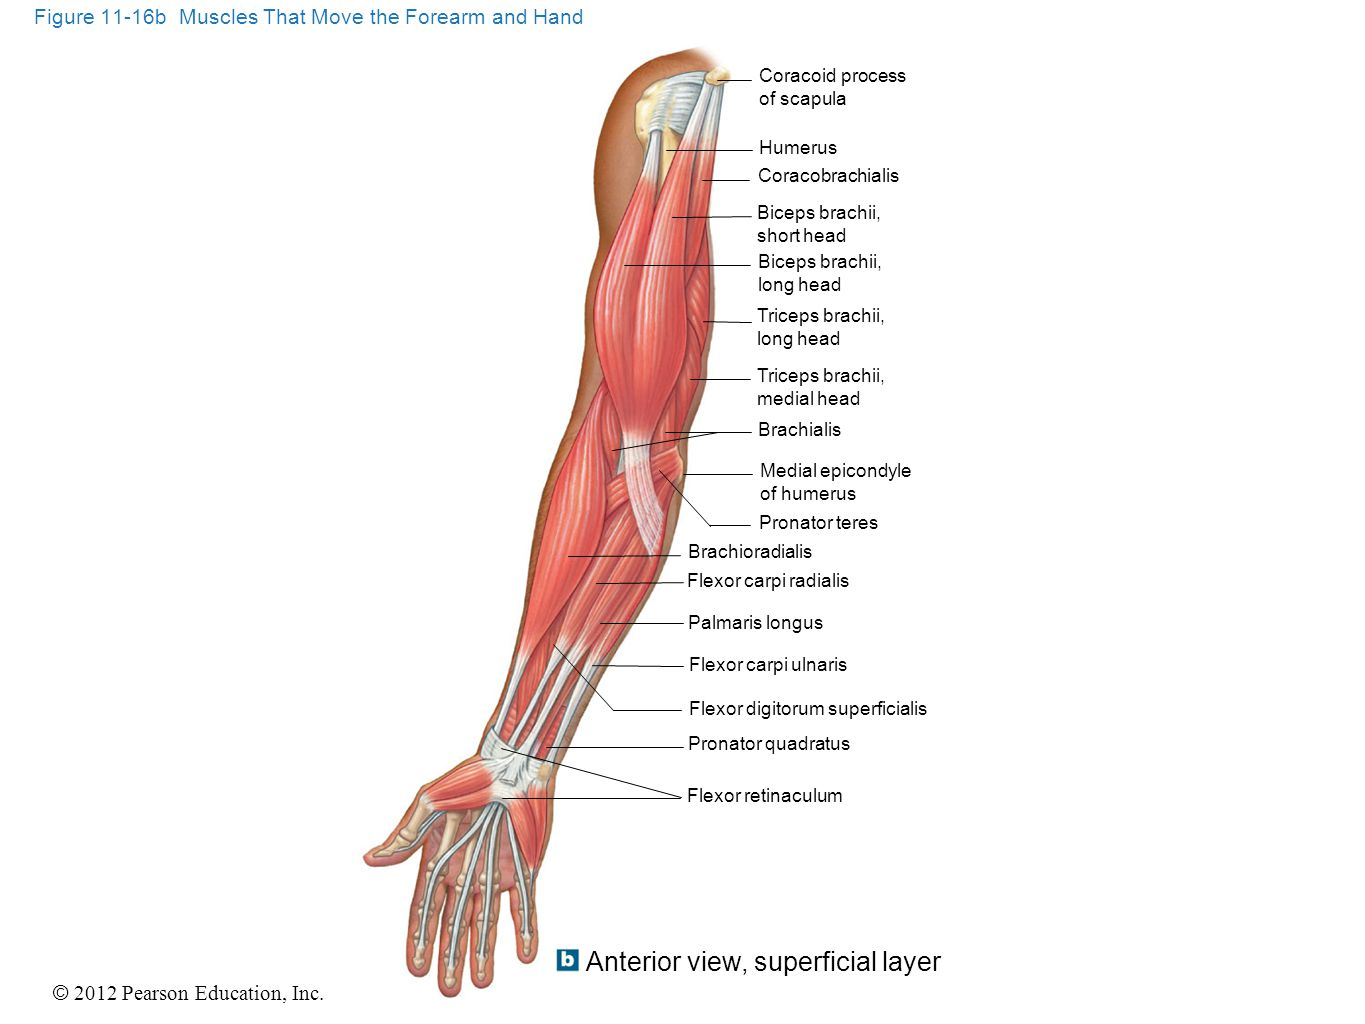 Figure 11-16b Muscles That Move the Forearm and Hand